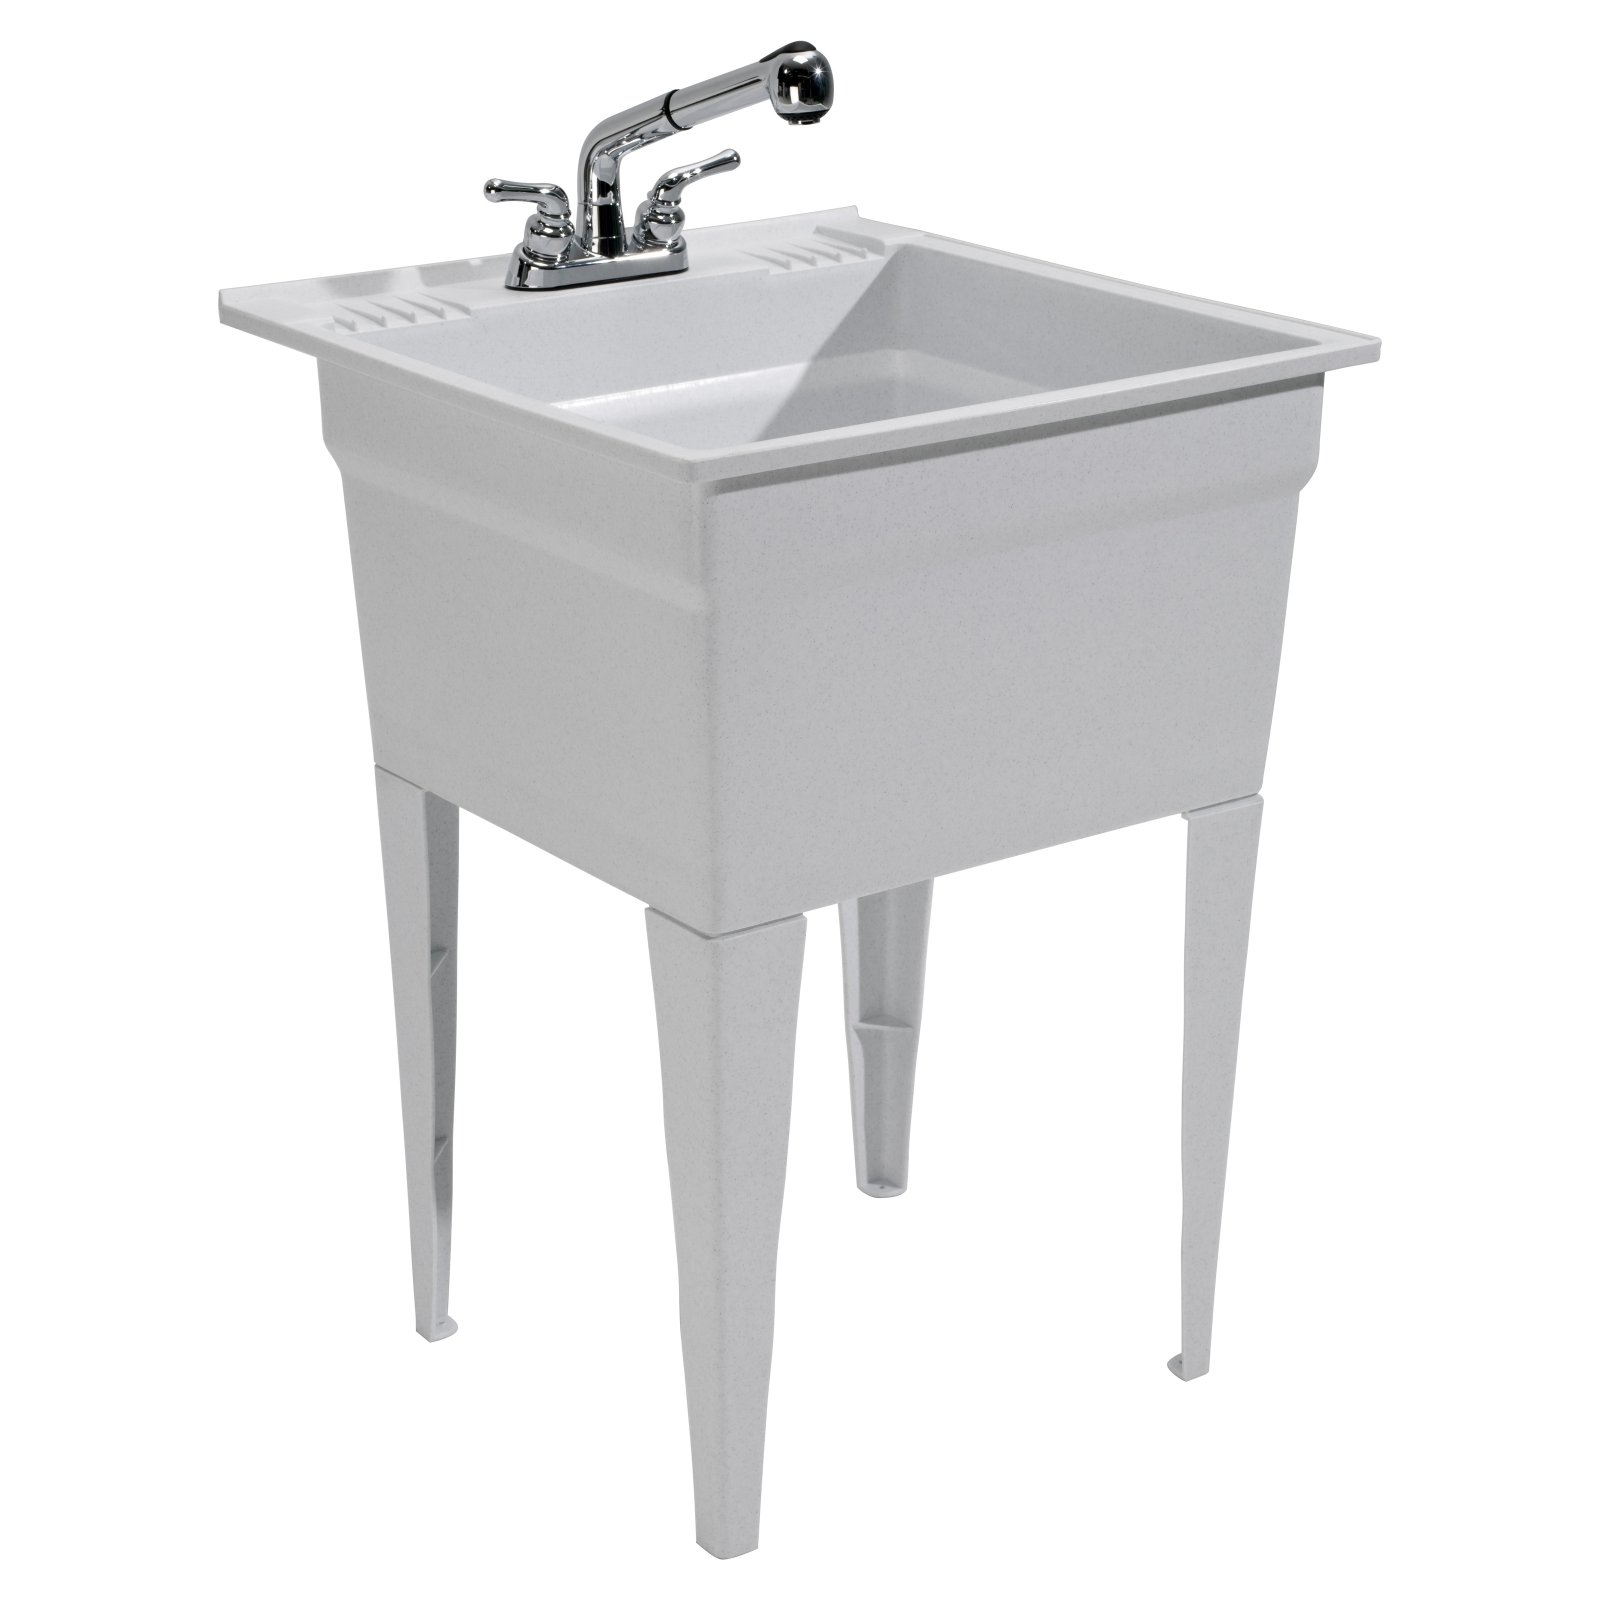 Charmant Cashel Heavy Duty Utility Sink Kit   Free Standing